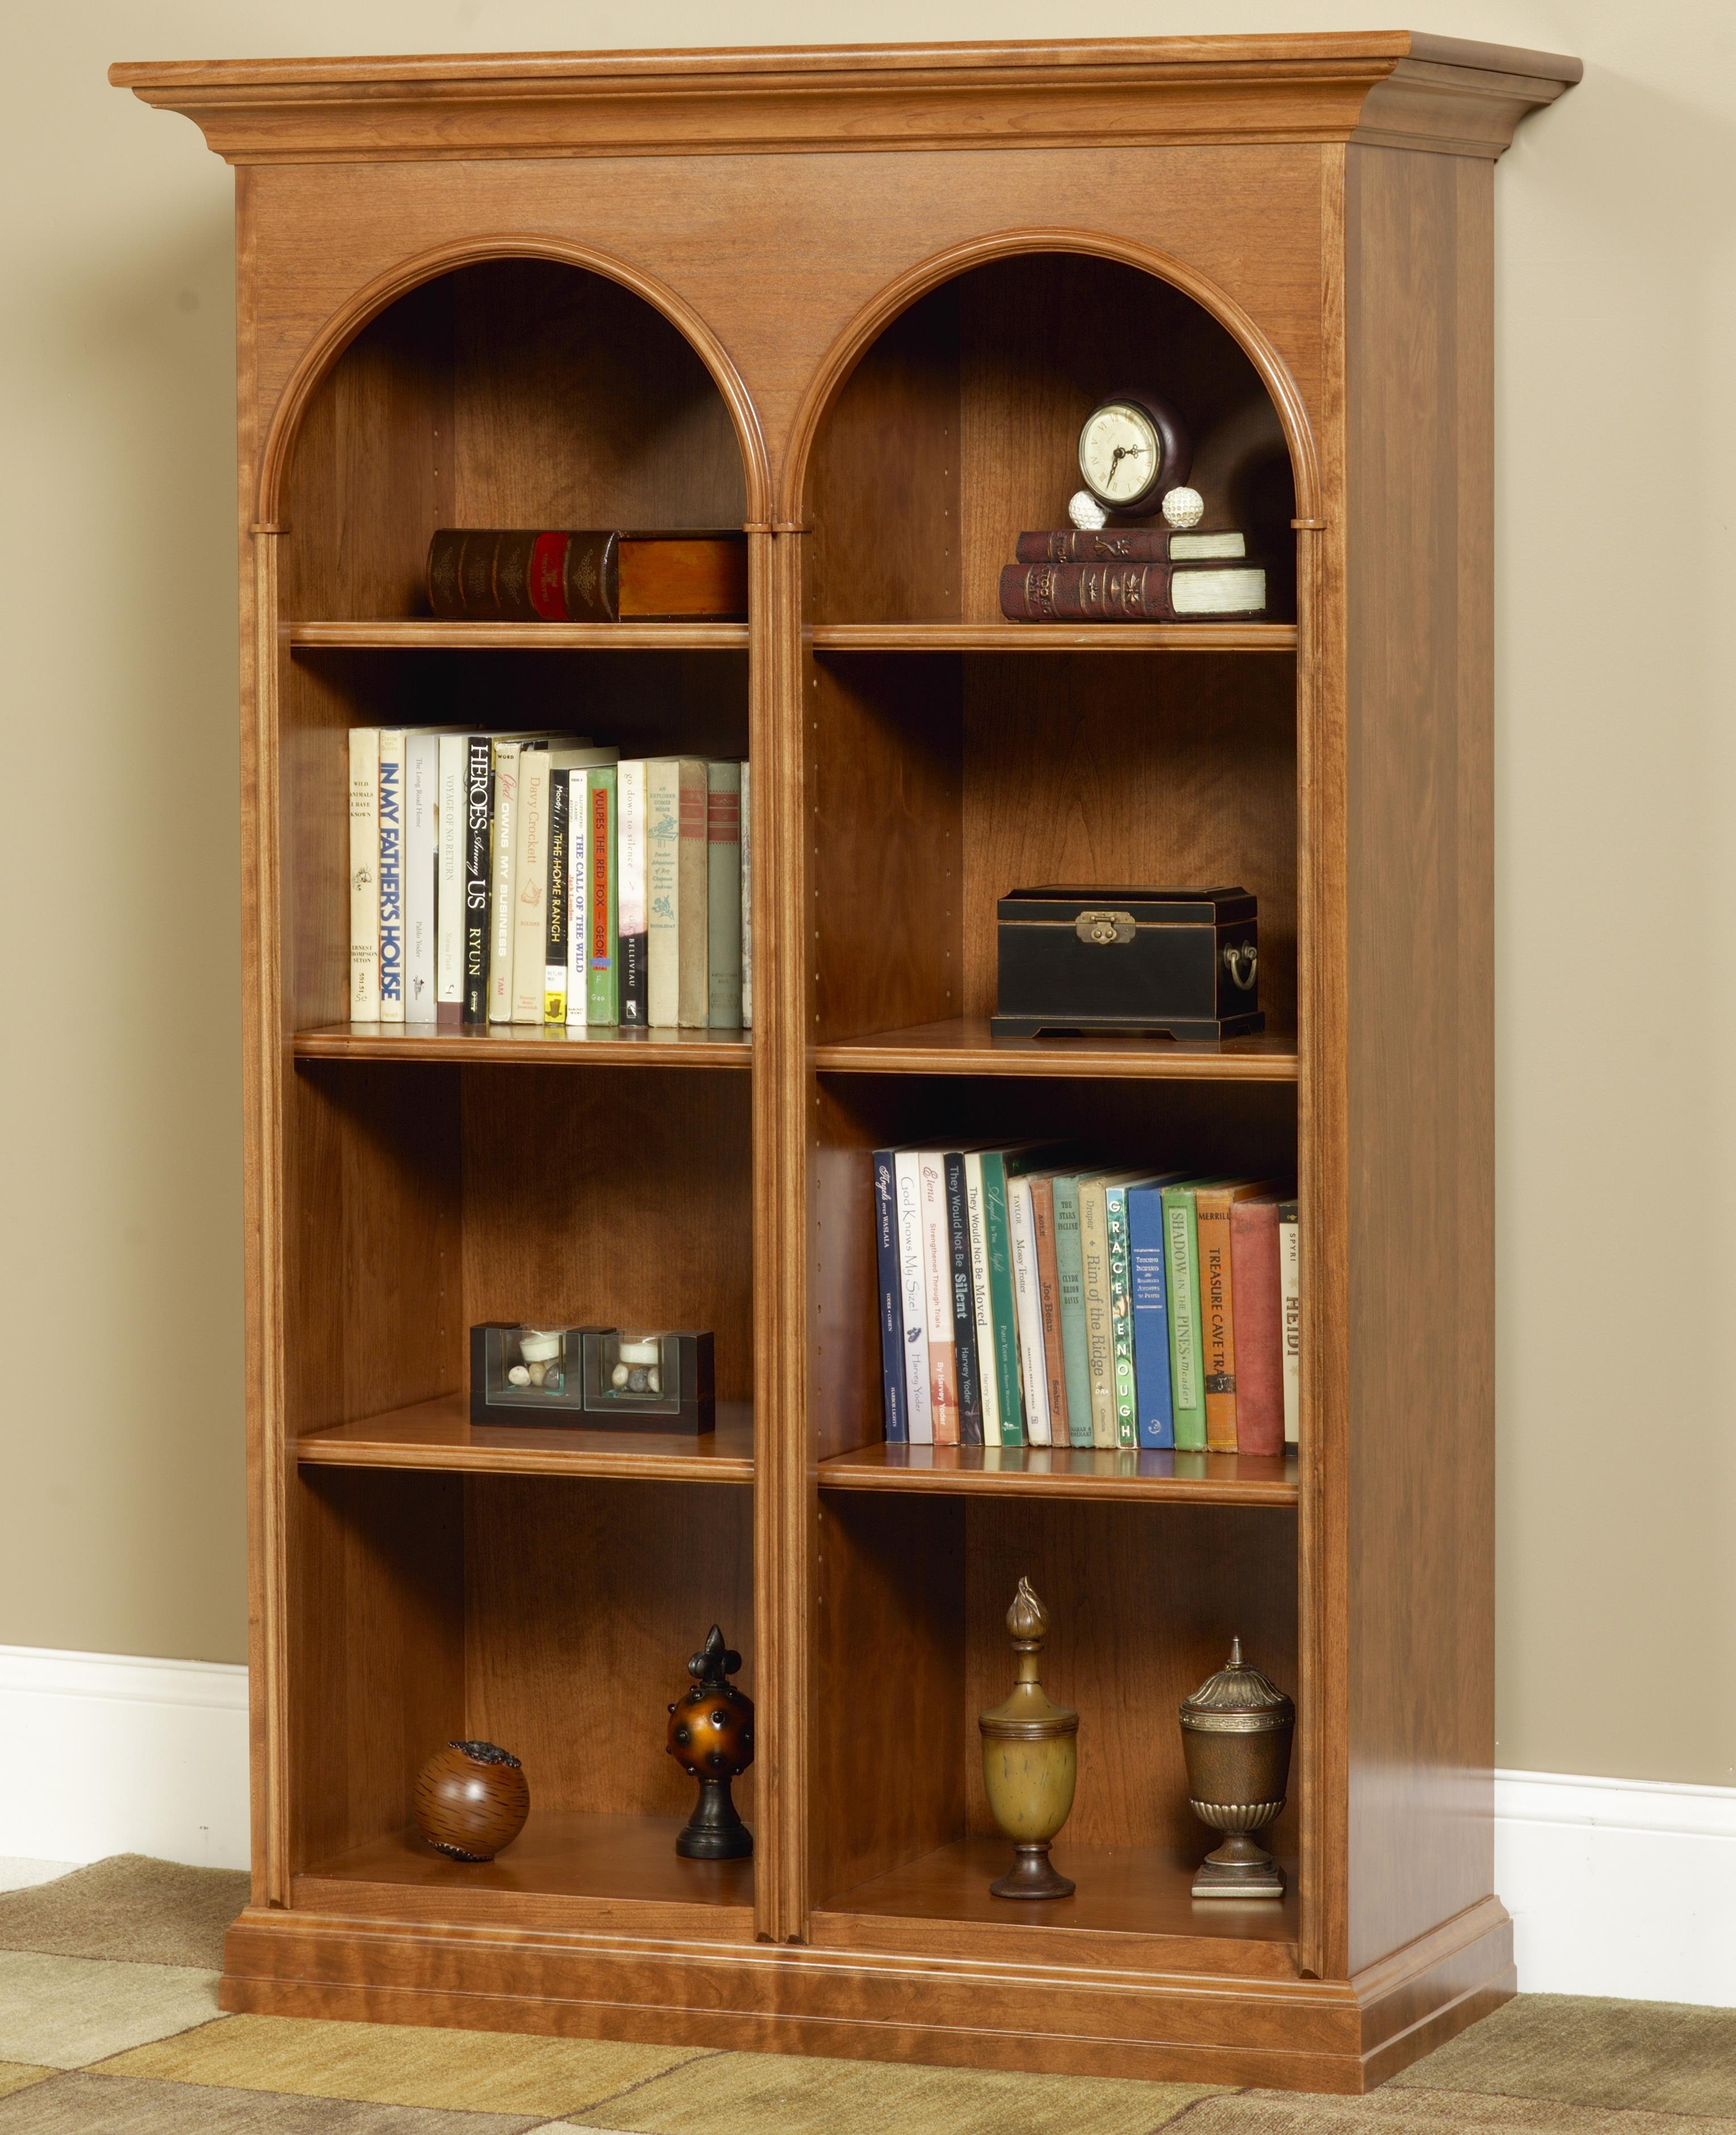 Wonder Wood Bookcases Customizable Legacy of Eloquence Bookcase by Wonder Wood at Saugerties Furniture Mart